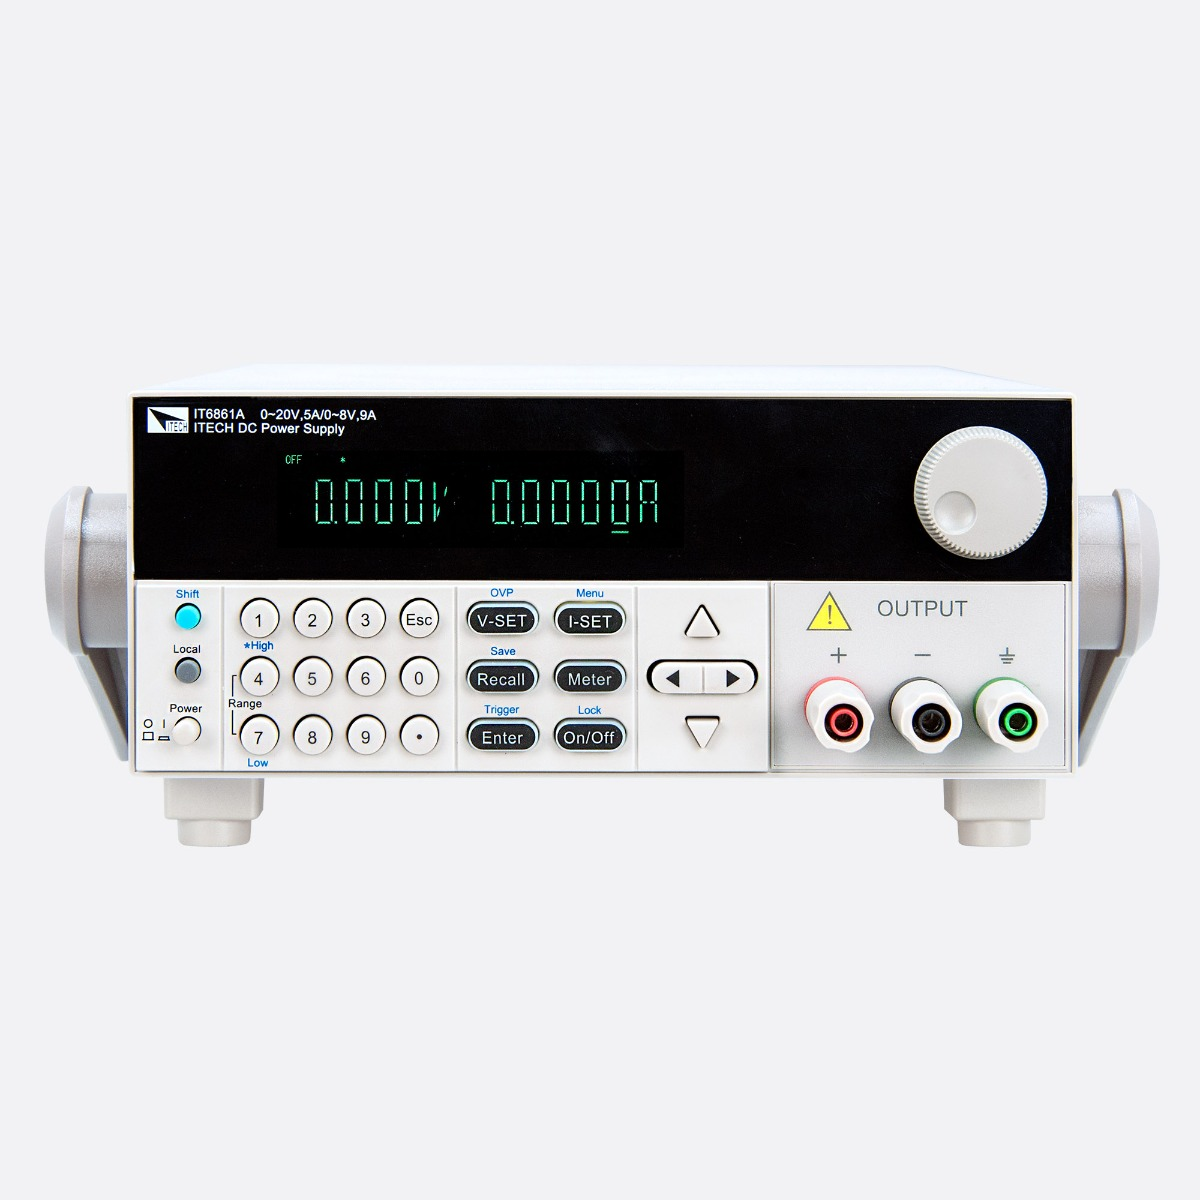 Itech_IT6860A-IT6870A-series_front_Ccontrols